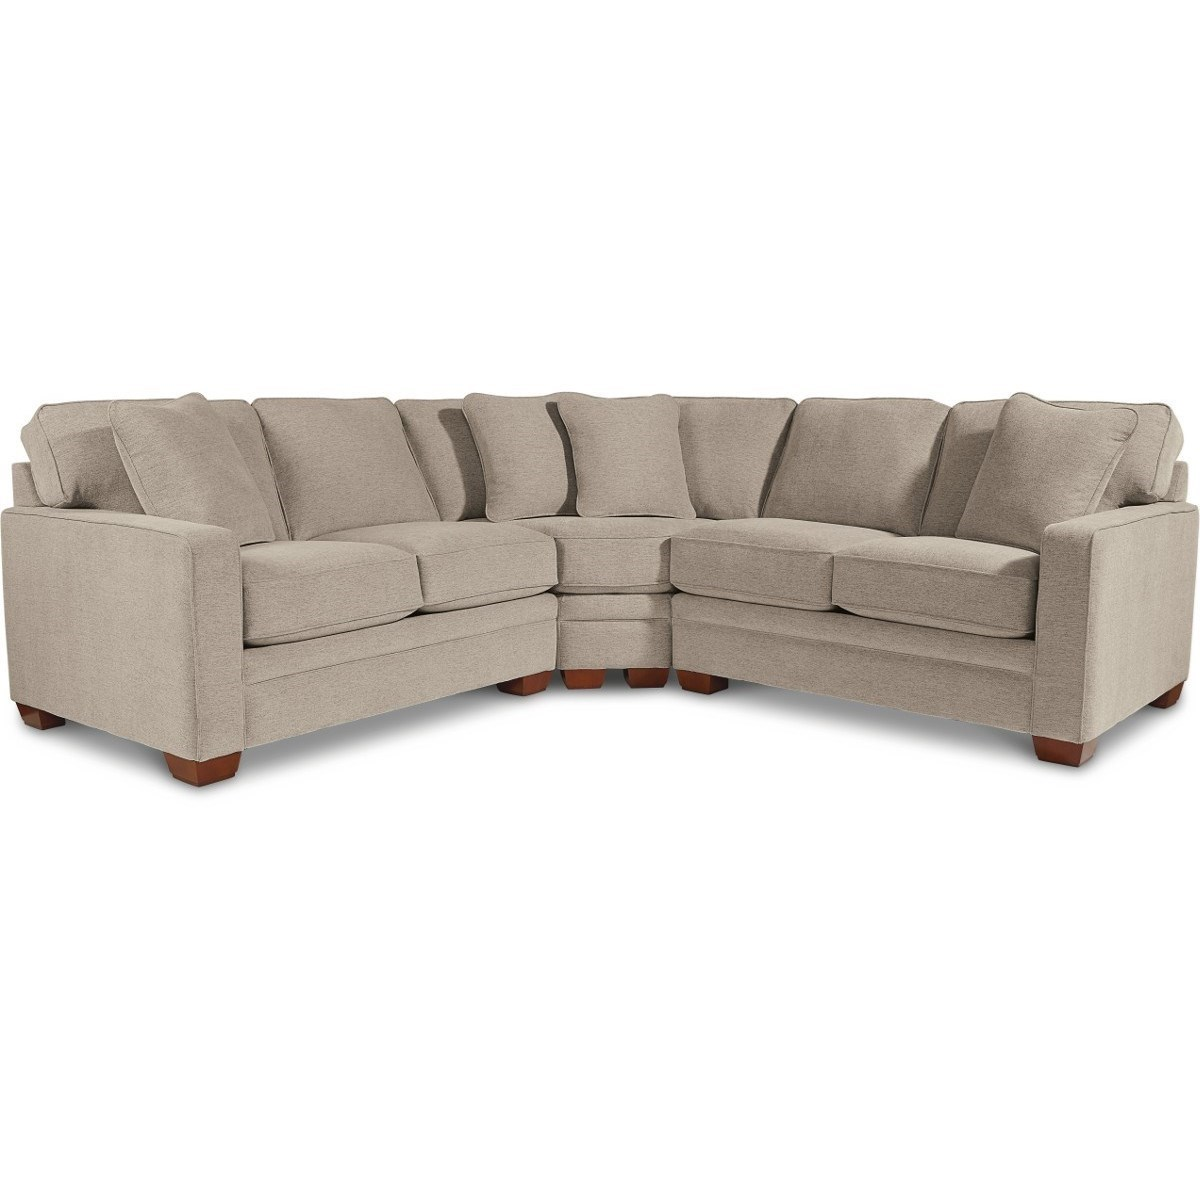 3 piece sectional with wedge